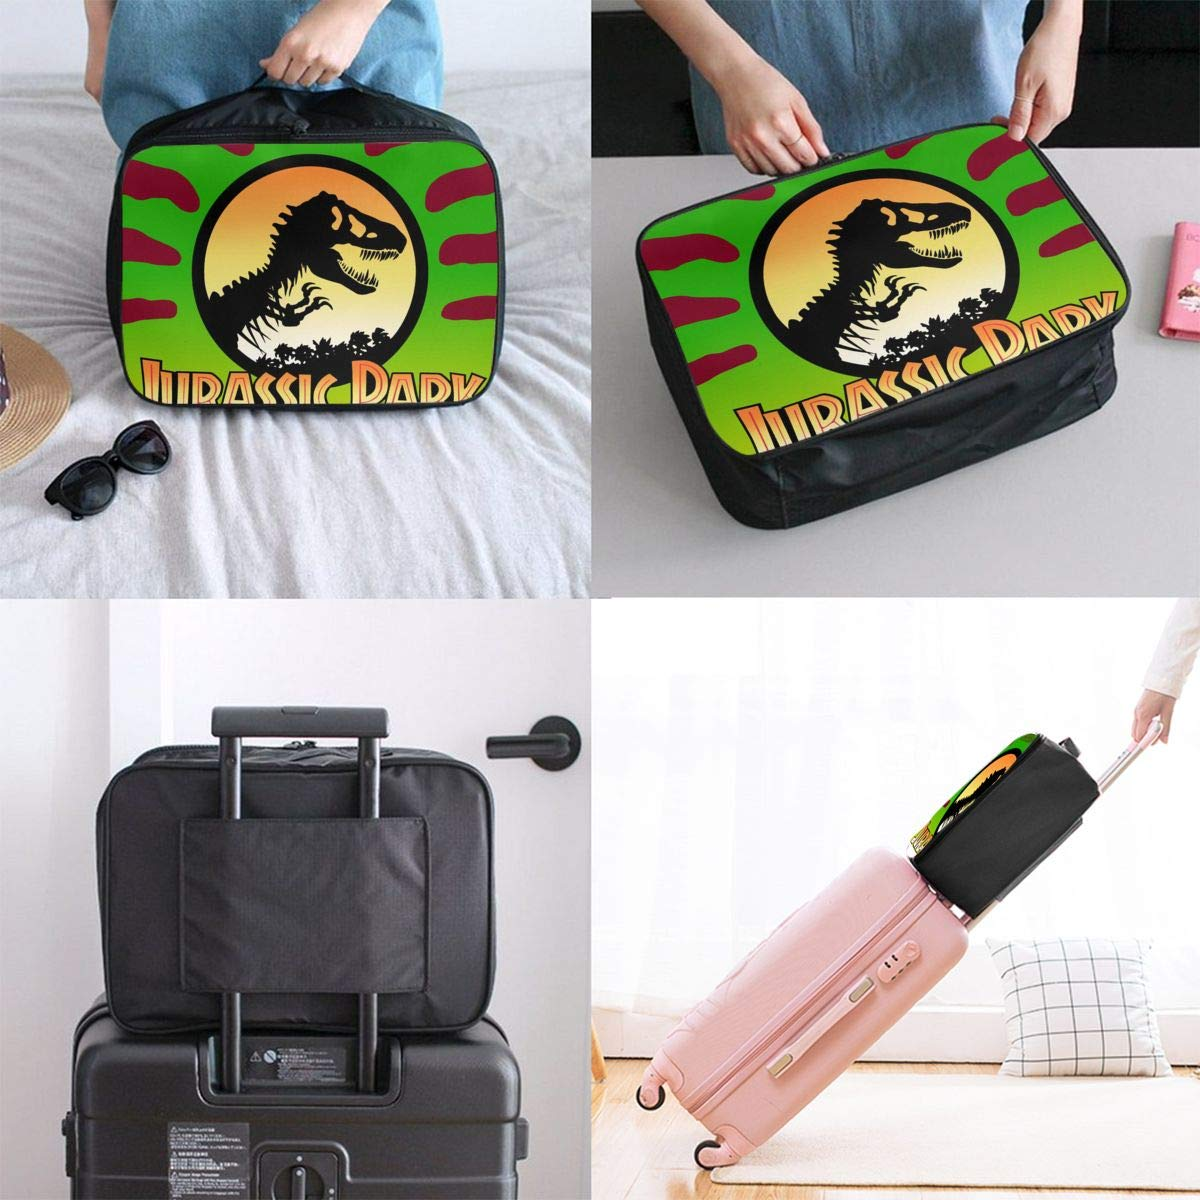 Jura/_ssic Park Logo Customize Casual Portable Travel Bag Suitcase Storage Bag Luggage Packing Tote Bag Trolley Bag